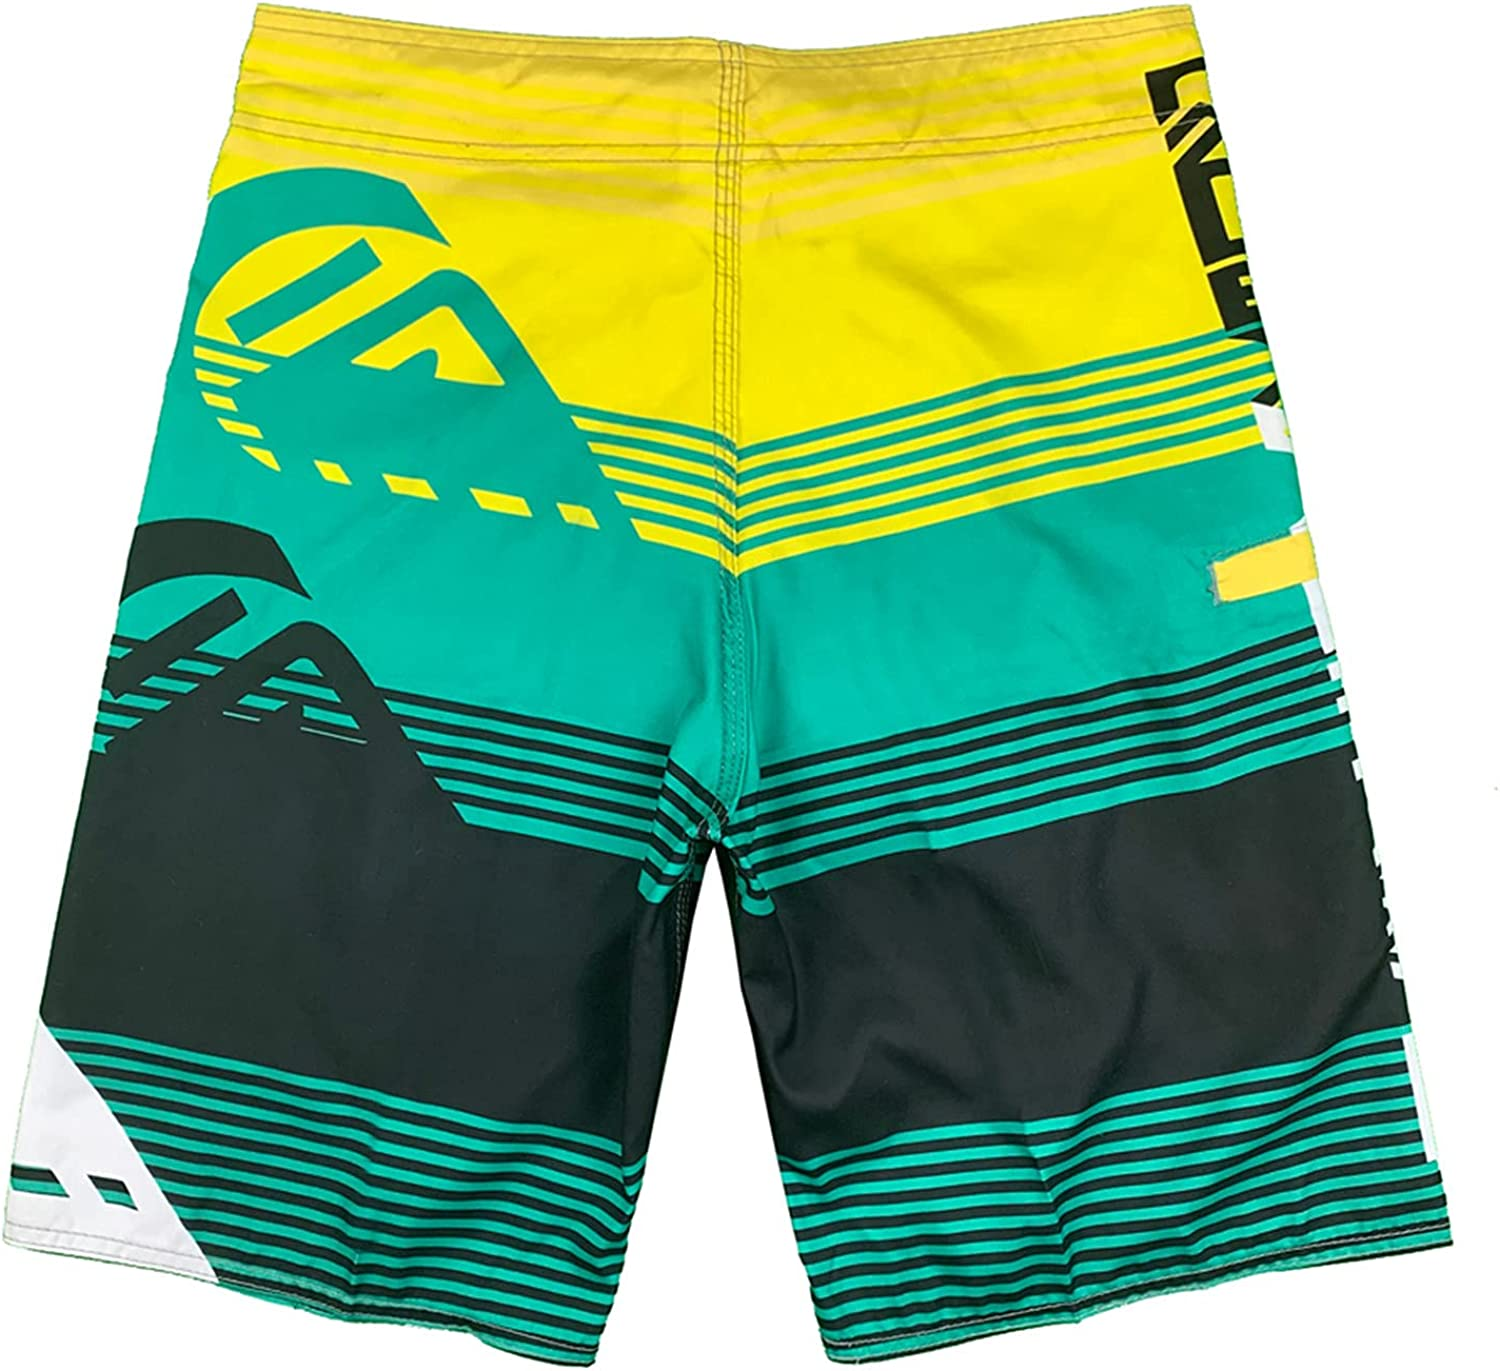 Men's Casual Classic Fitness Sports Plus Size Surfing Quick-Drying Beach with Elastic Waist Pants Drawstring Shorts